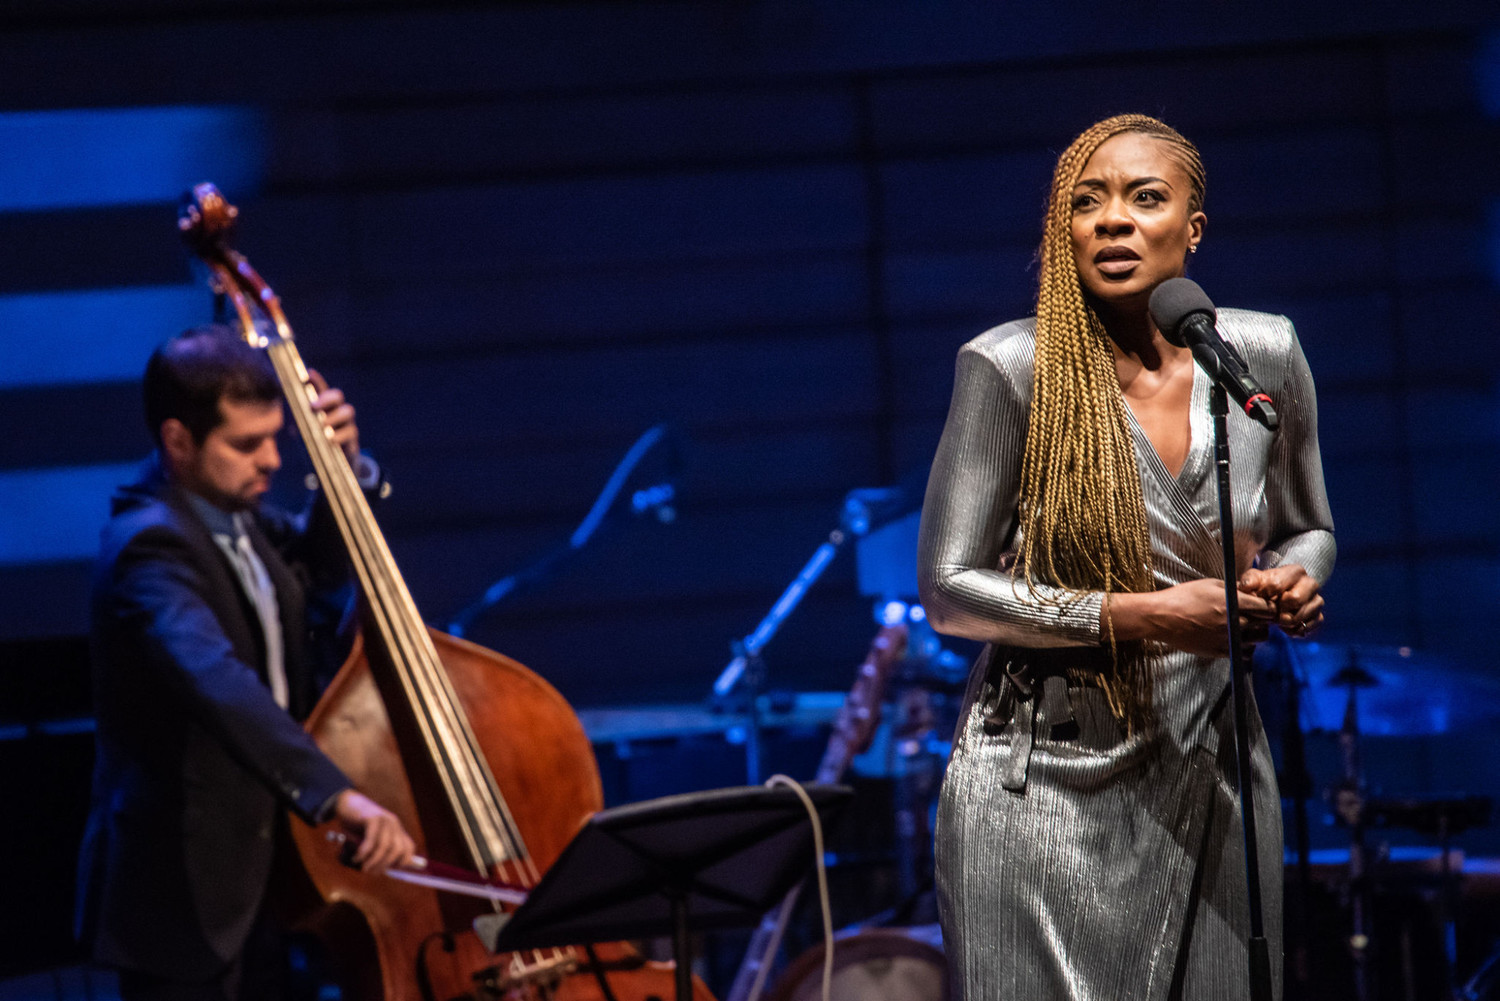 BWW Review: UNCOVERED: JONI MITCHELL & CAROLE KING Re-imagines the 21st Century's Biggest Singer-Songwriter Hits